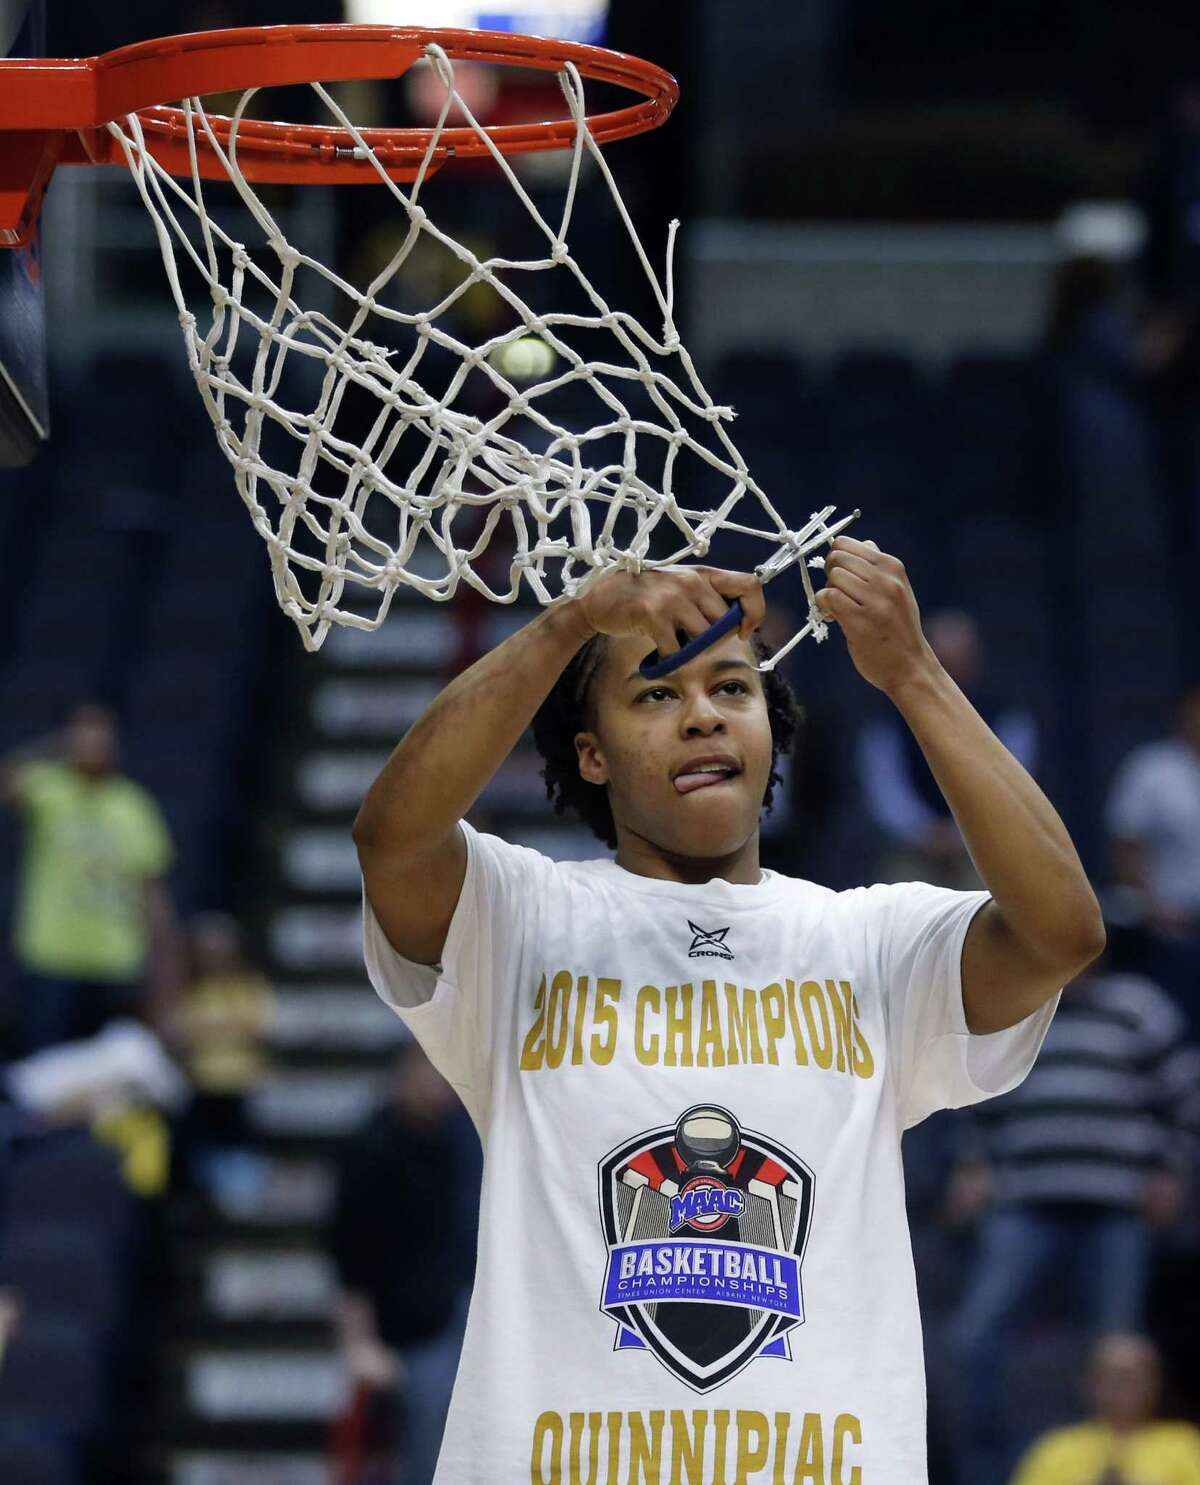 Quinnipiac's Jasmine Martin cuts the net after the Bobcats' 72-61 win over Marist in the MAAC tournament championship game on Monday in Albany, N.Y.